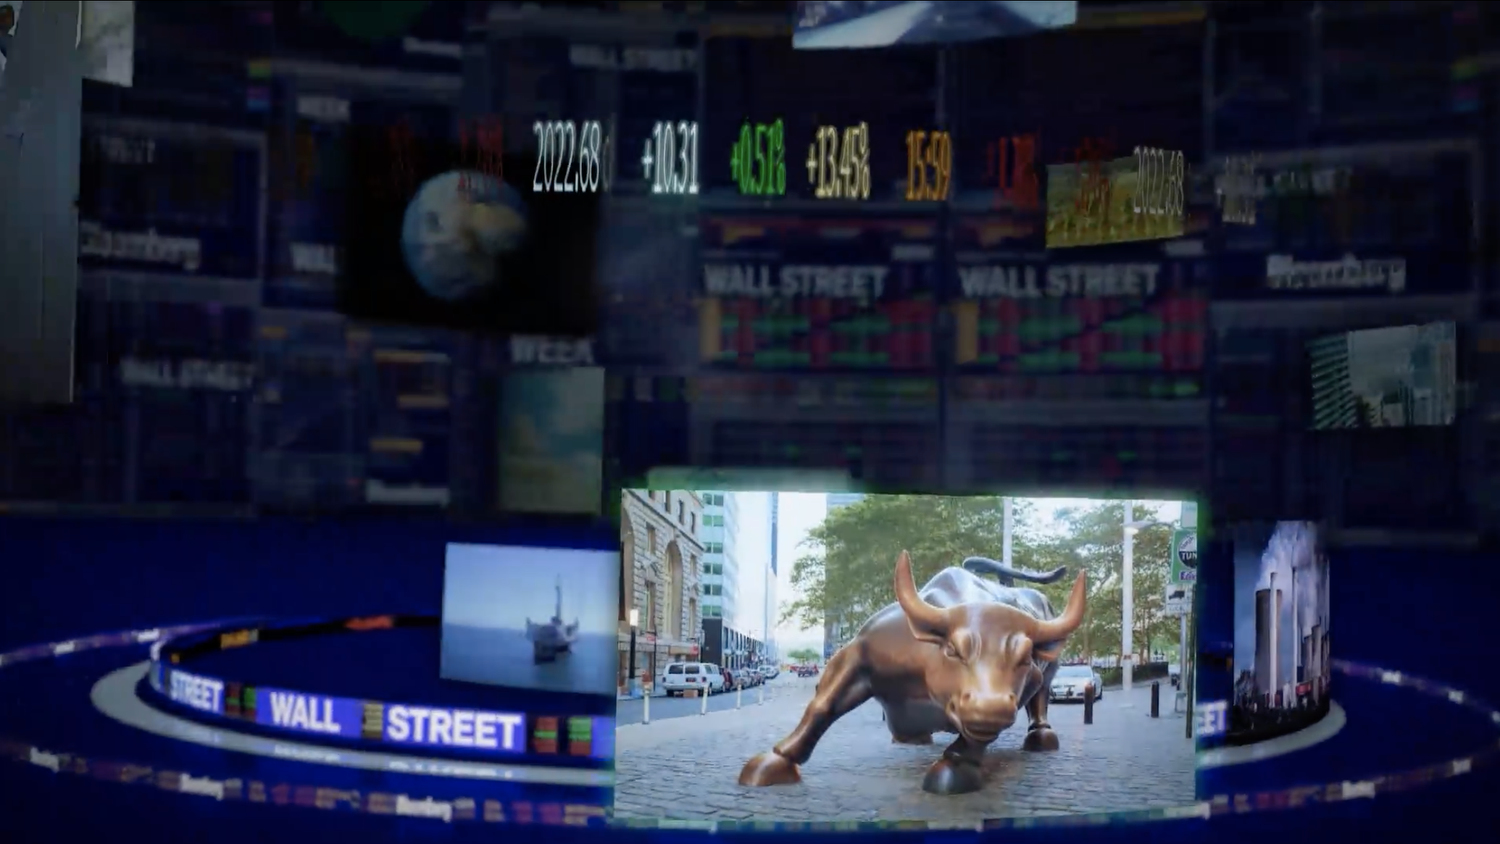 ncs_Bloomberg-Wall-Street-Week-Graphics_0005